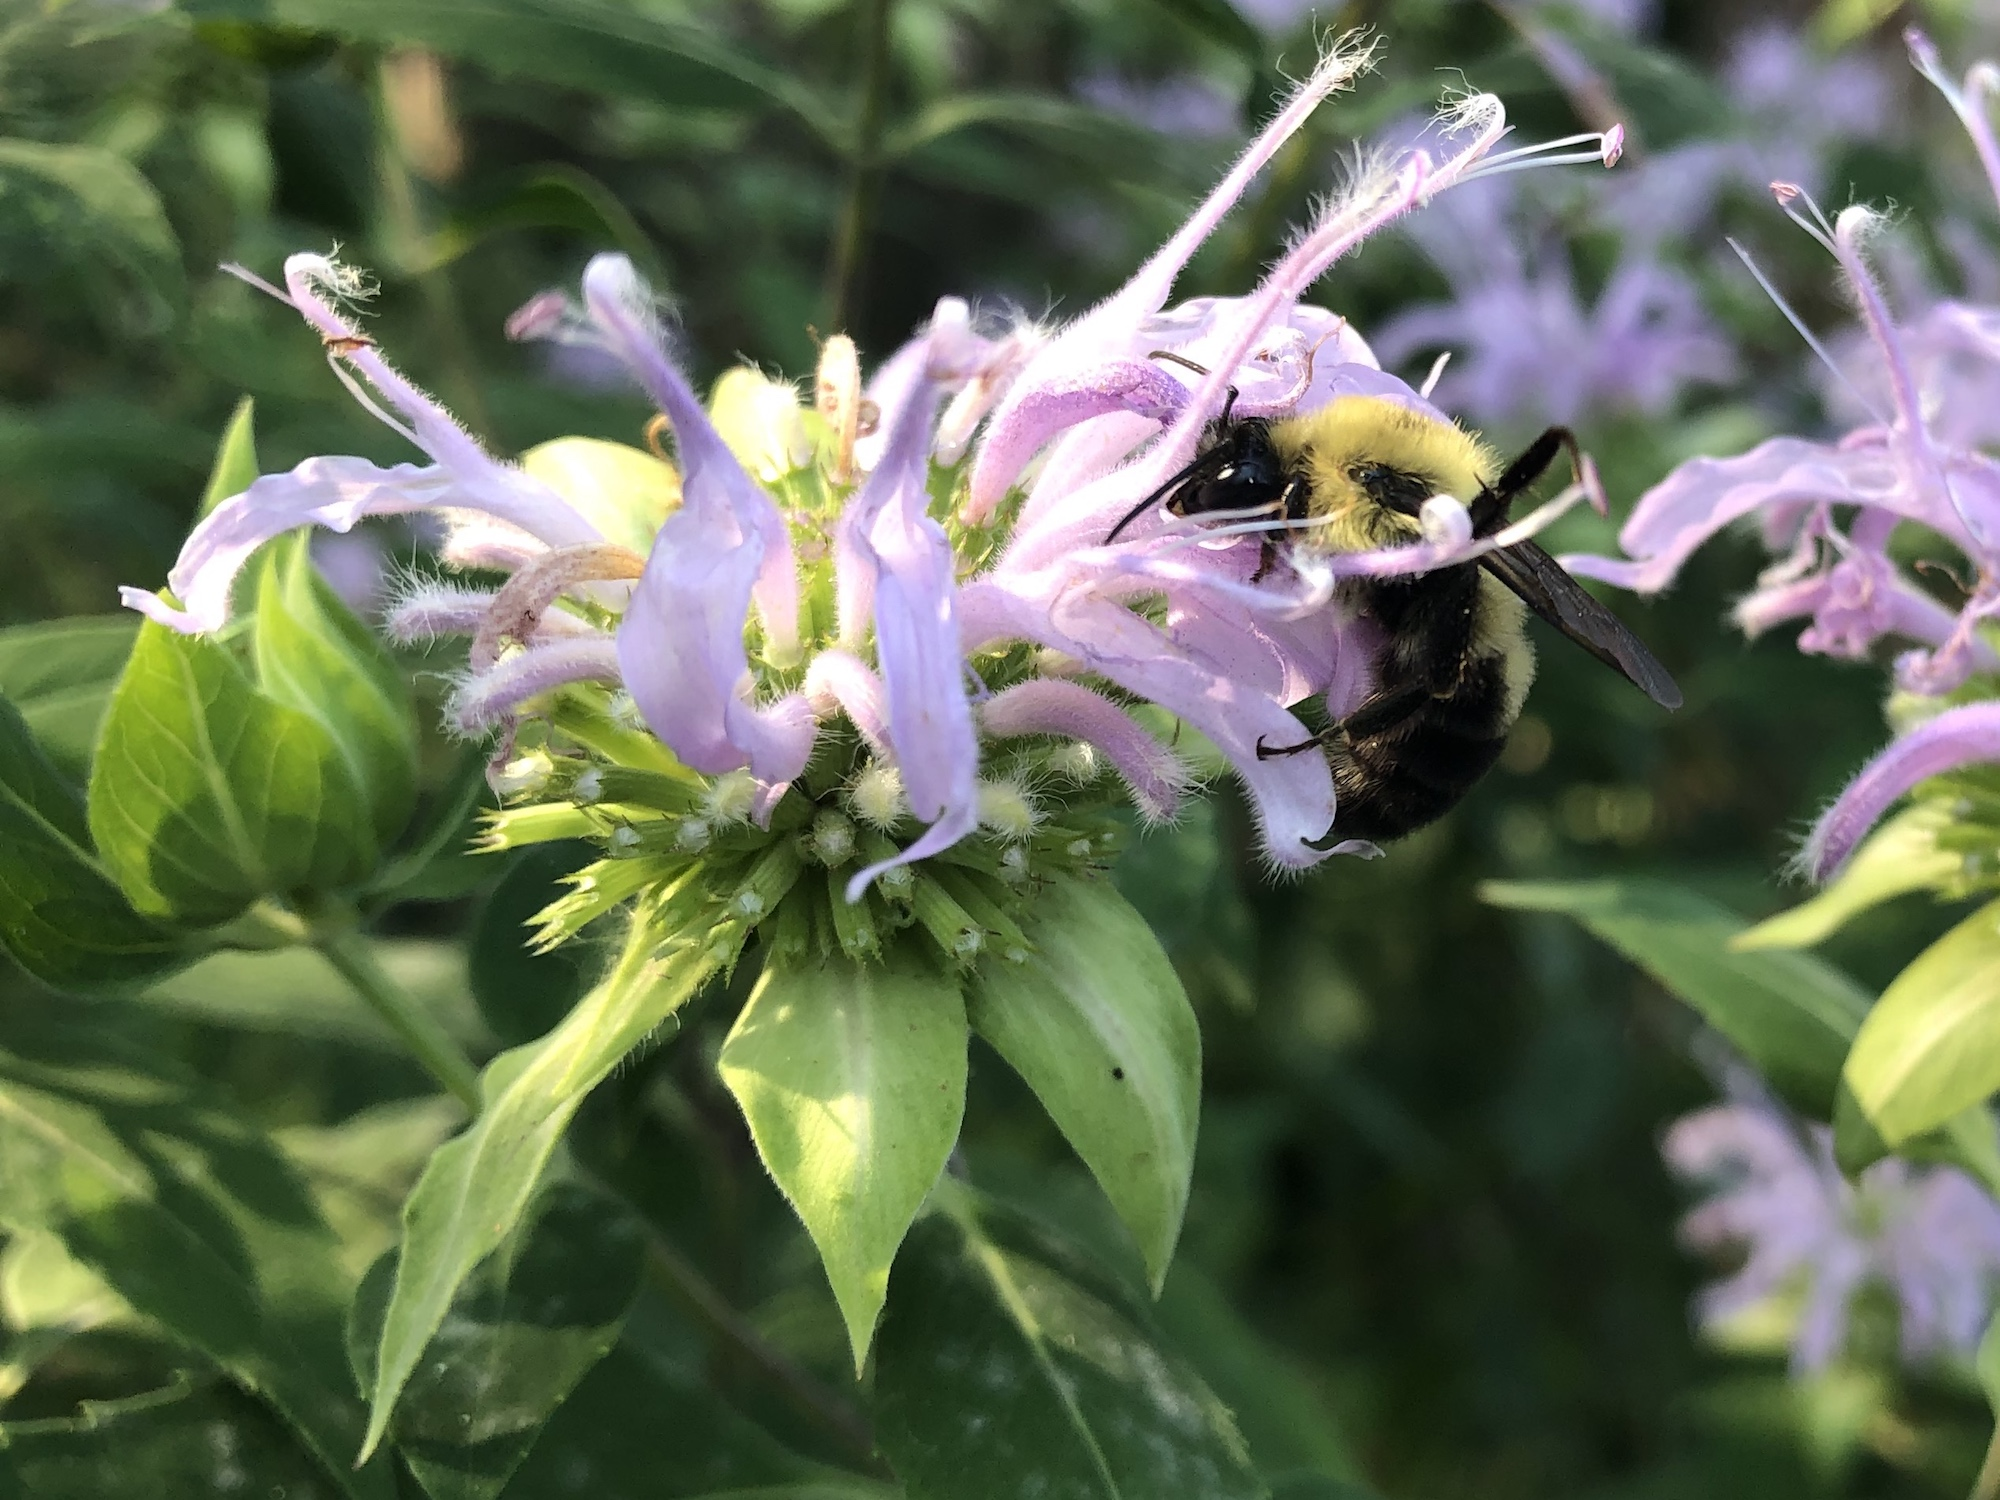 Bumblebee on Bergamot on August 14, 2020.